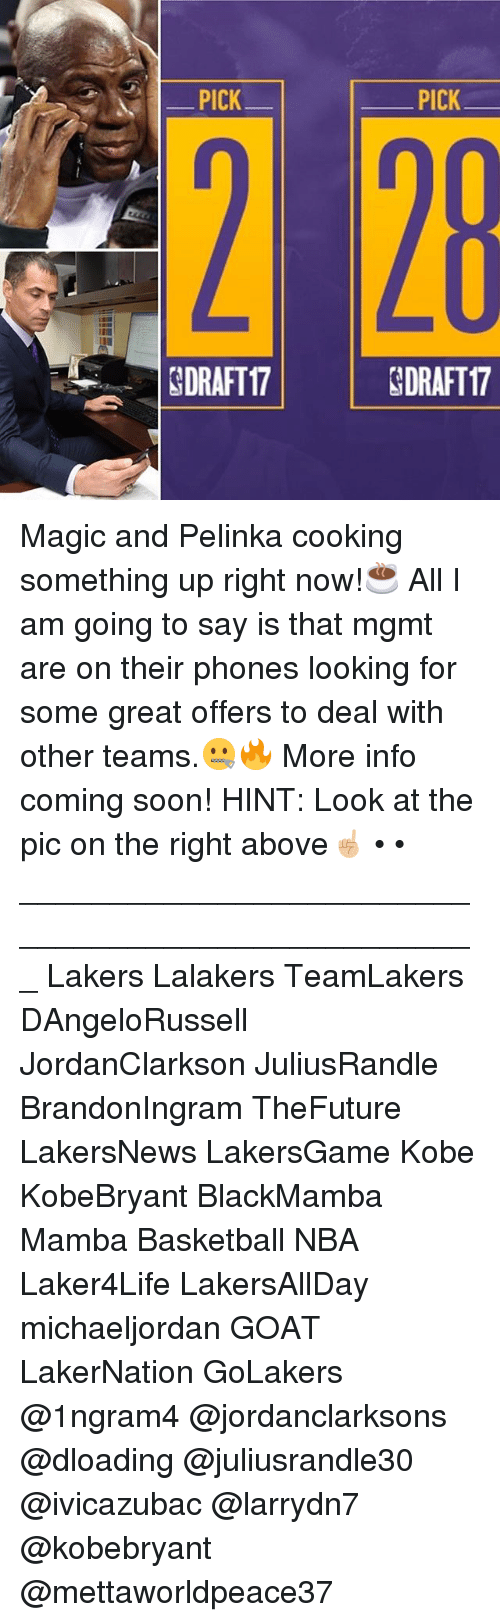 Basketball, Los Angeles Lakers, and Memes: PICK  GDRAFT17  PICK  GDRAFT17 Magic and Pelinka cooking something up right now!☕️ All I am going to say is that mgmt are on their phones looking for some great offers to deal with other teams.🤐🔥 More info coming soon! HINT: Look at the pic on the right above☝🏼 • • ___________________________________________________ Lakers Lalakers TeamLakers DAngeloRussell JordanClarkson JuliusRandle BrandonIngram TheFuture LakersNews LakersGame Kobe KobeBryant BlackMamba Mamba Basketball NBA Laker4Life LakersAllDay michaeljordan GOAT LakerNation GoLakers @1ngram4 @jordanclarksons @dloading @juliusrandle30 @ivicazubac @larrydn7 @kobebryant @mettaworldpeace37